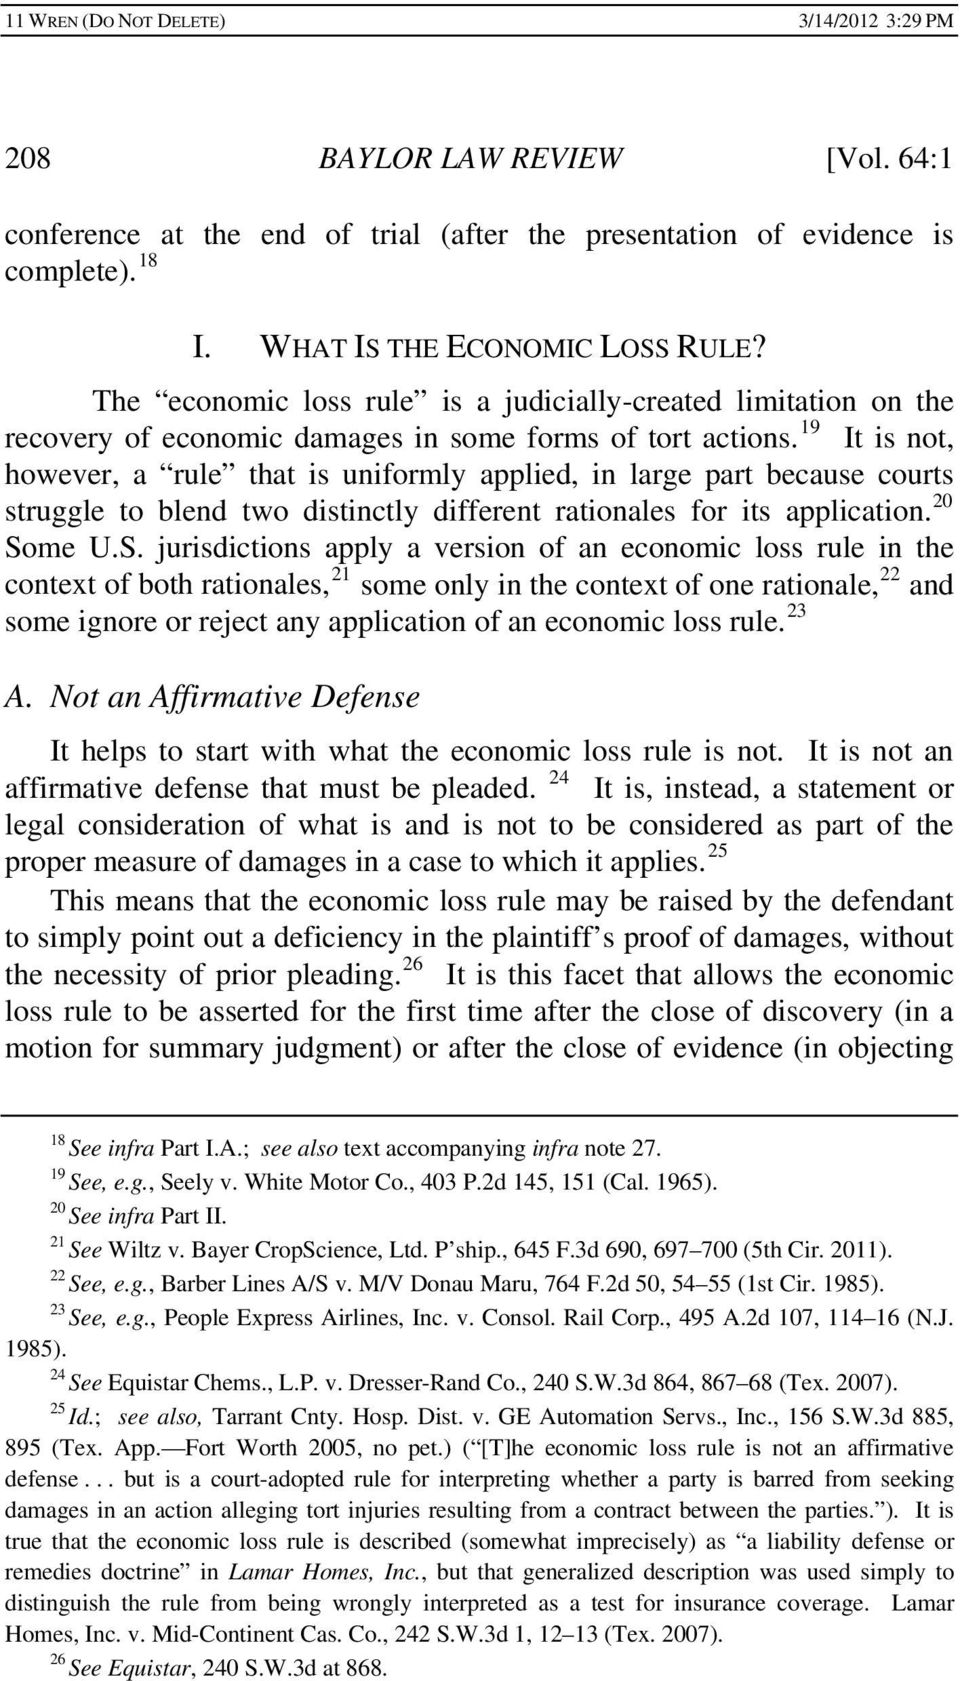 19 It is not, however, a rule that is uniformly applied, in large part because courts struggle to blend two distinctly different rationales for its application. 20 So